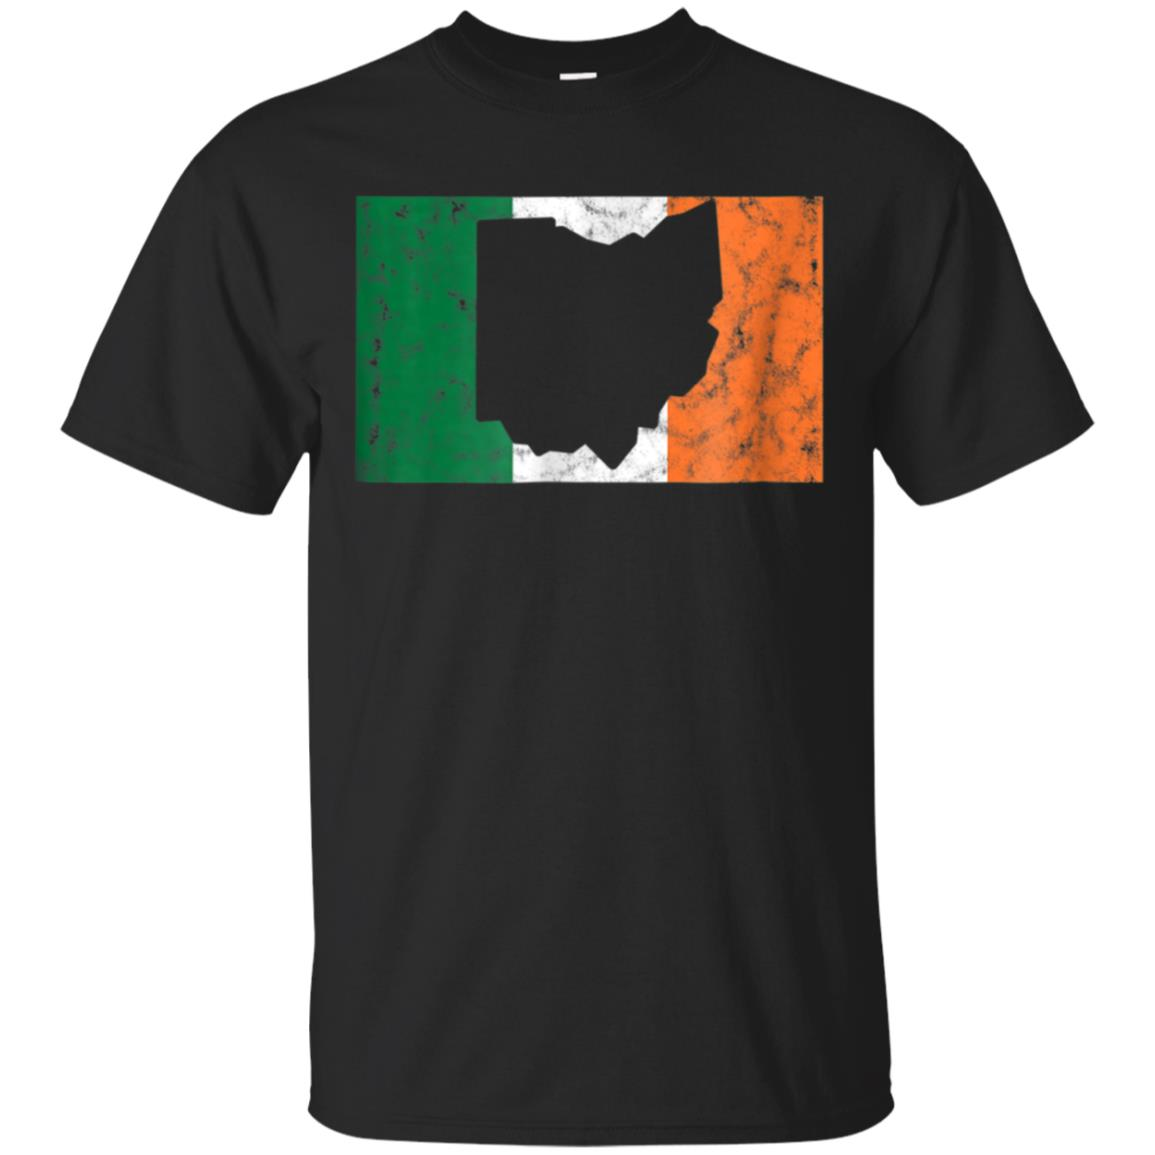 Ohio Irish Flag T Shirt - Funny St Patricks Day T Shirts 99promocode